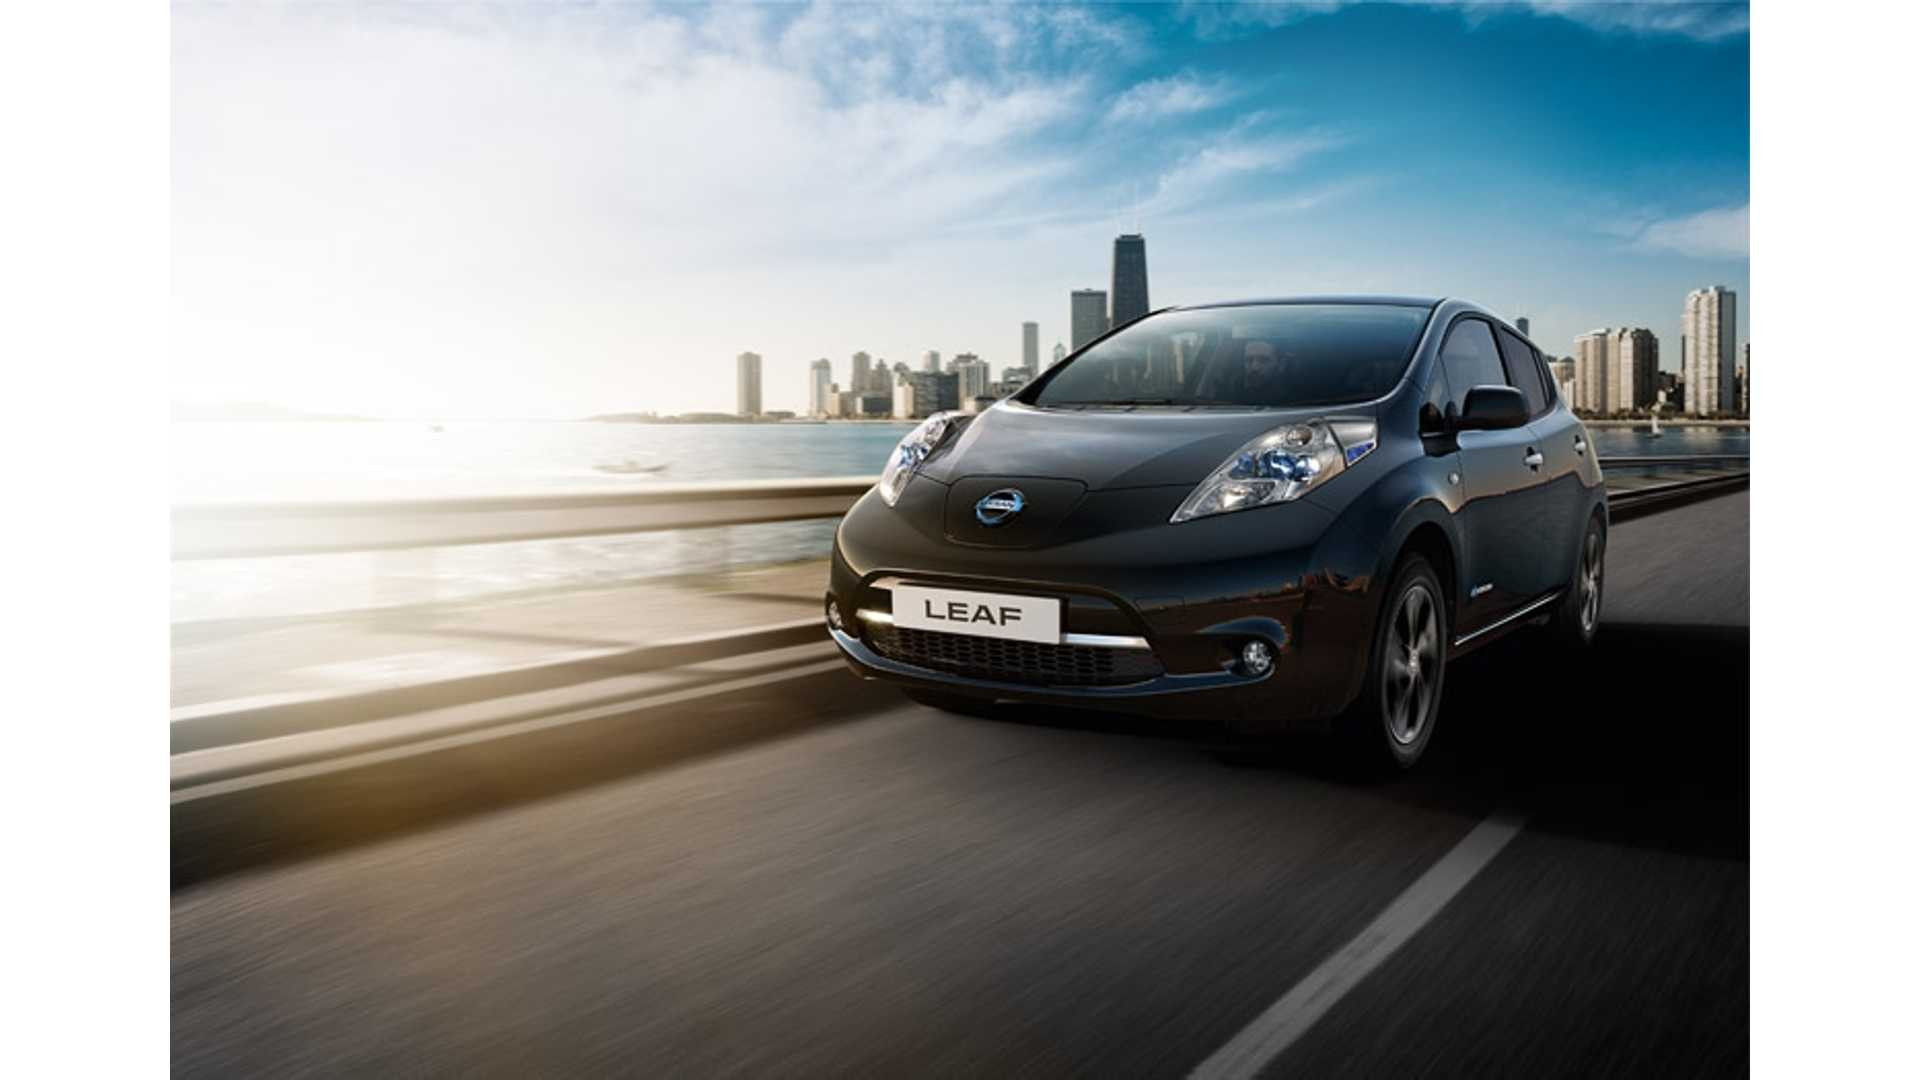 worlds best selling electric vehicle - HD1920×1080